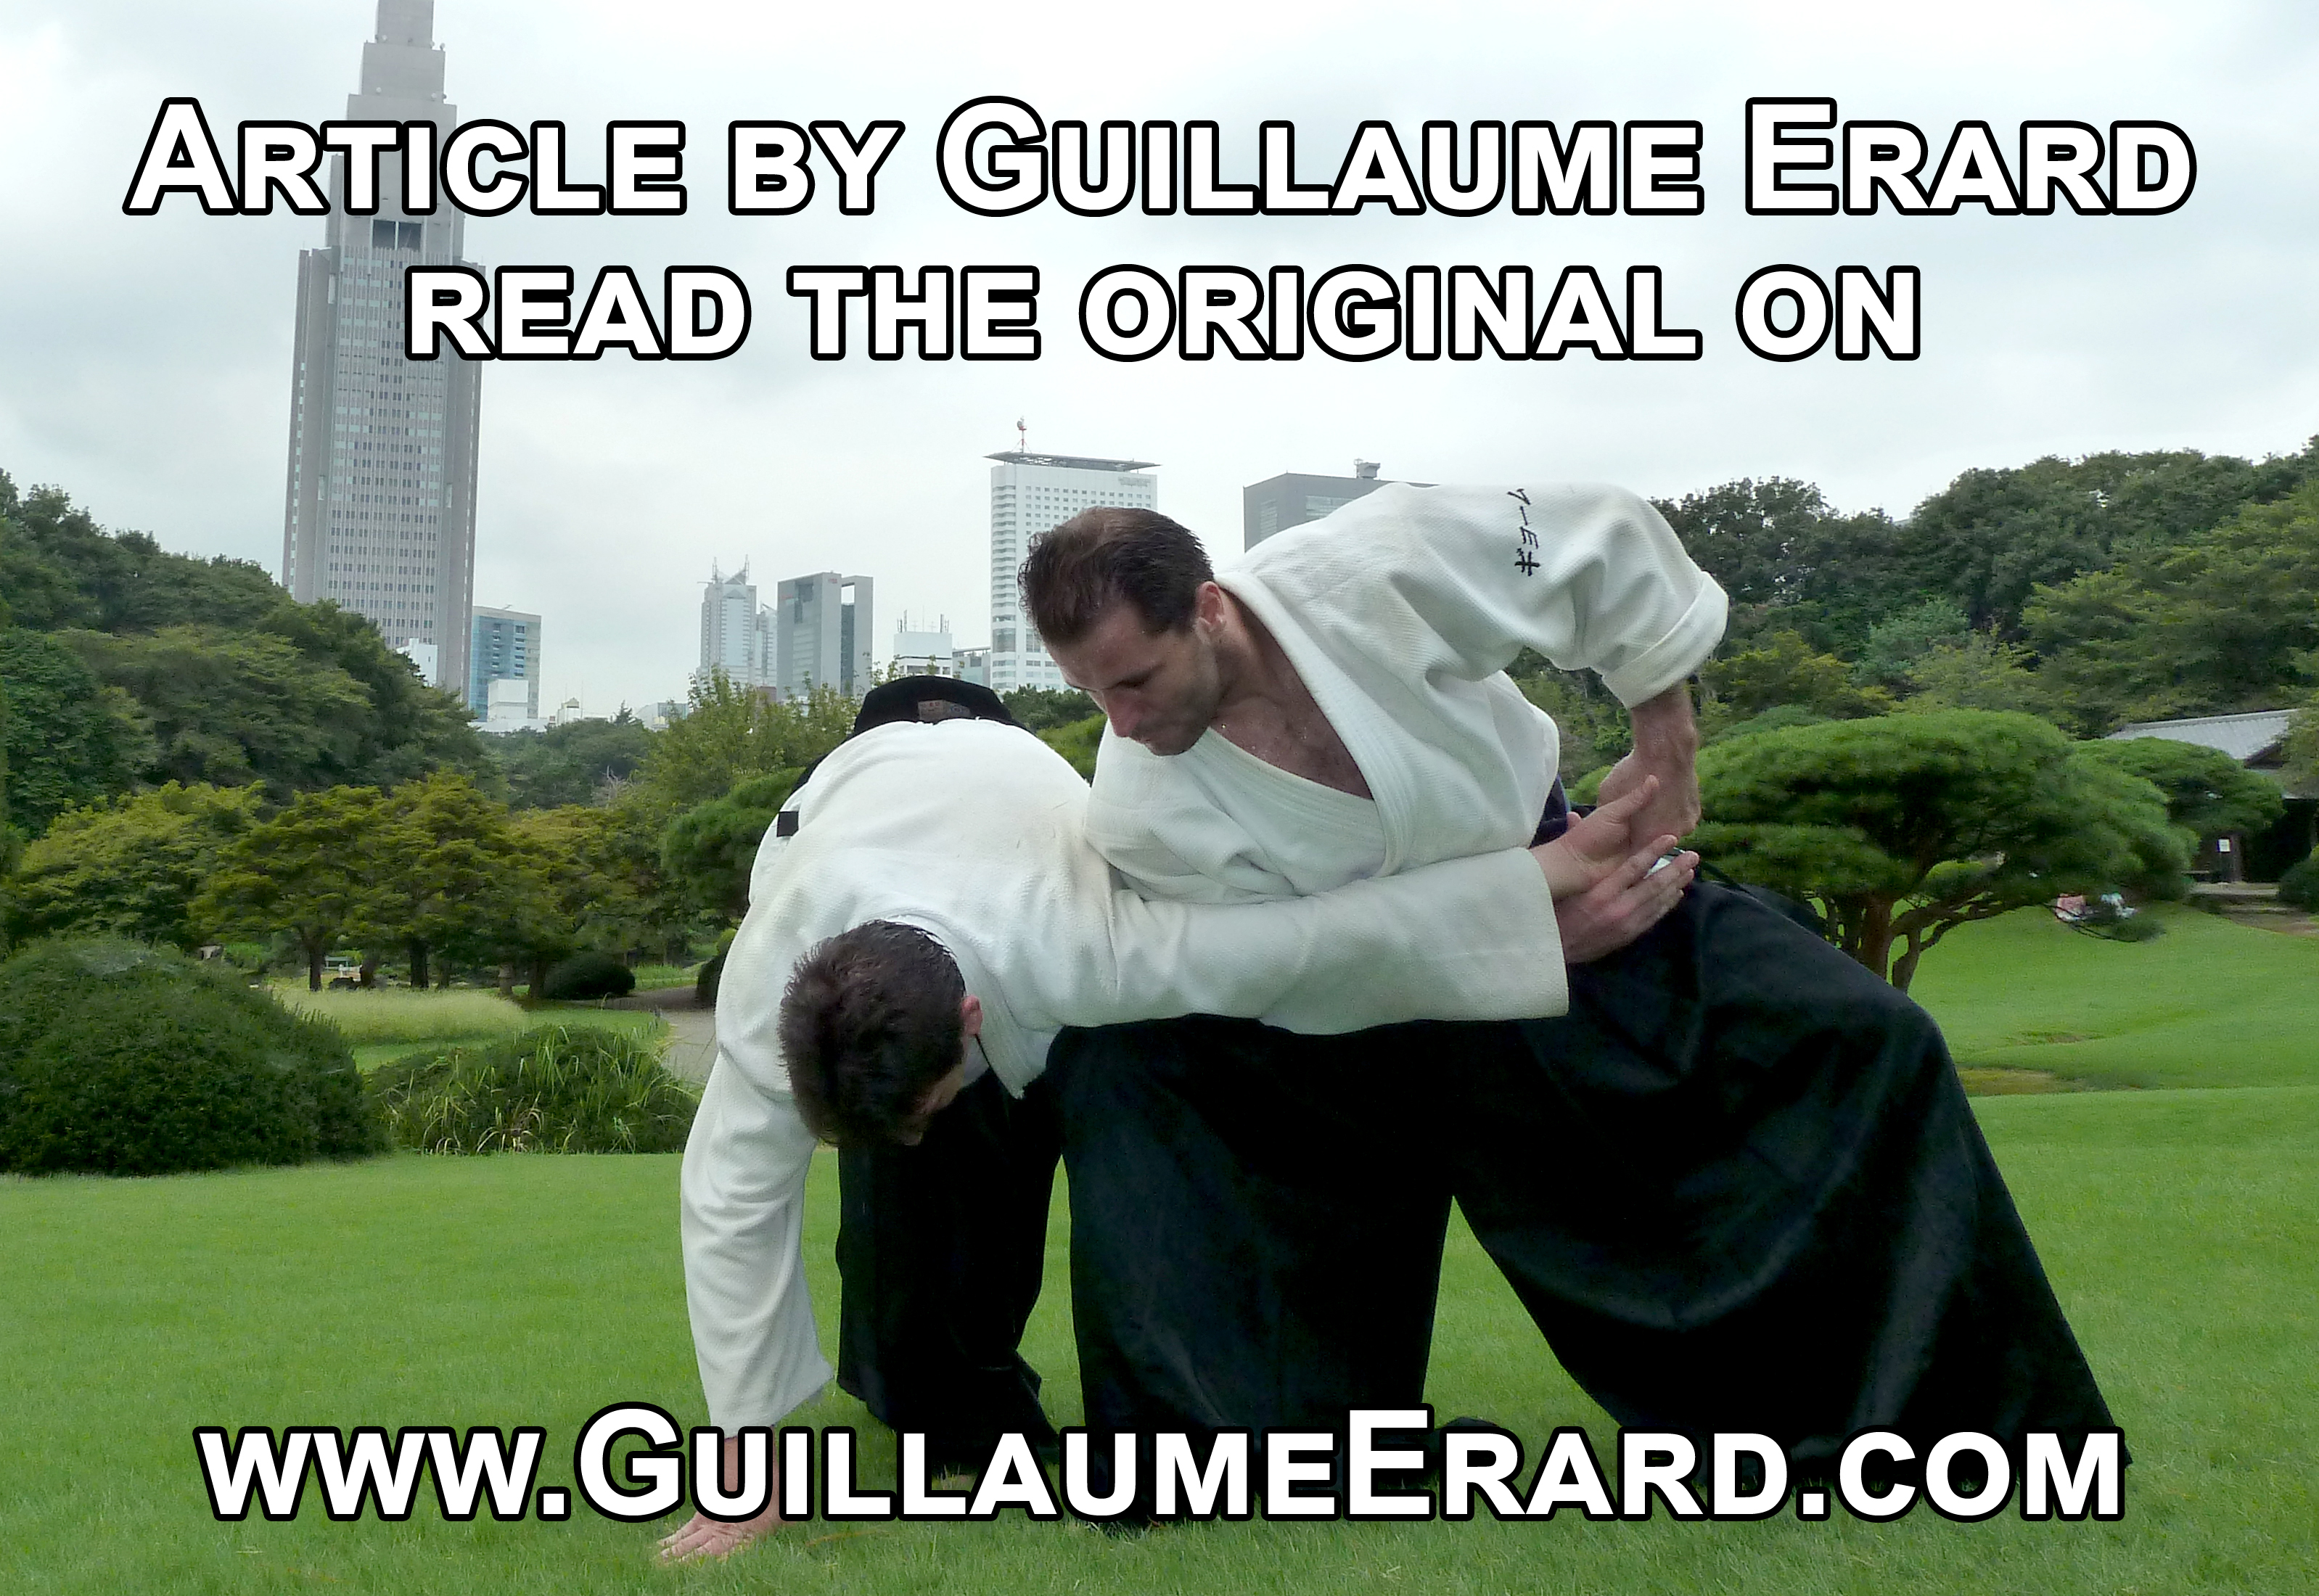 Guillaume Erard teaching Aikido to the Tokyo police